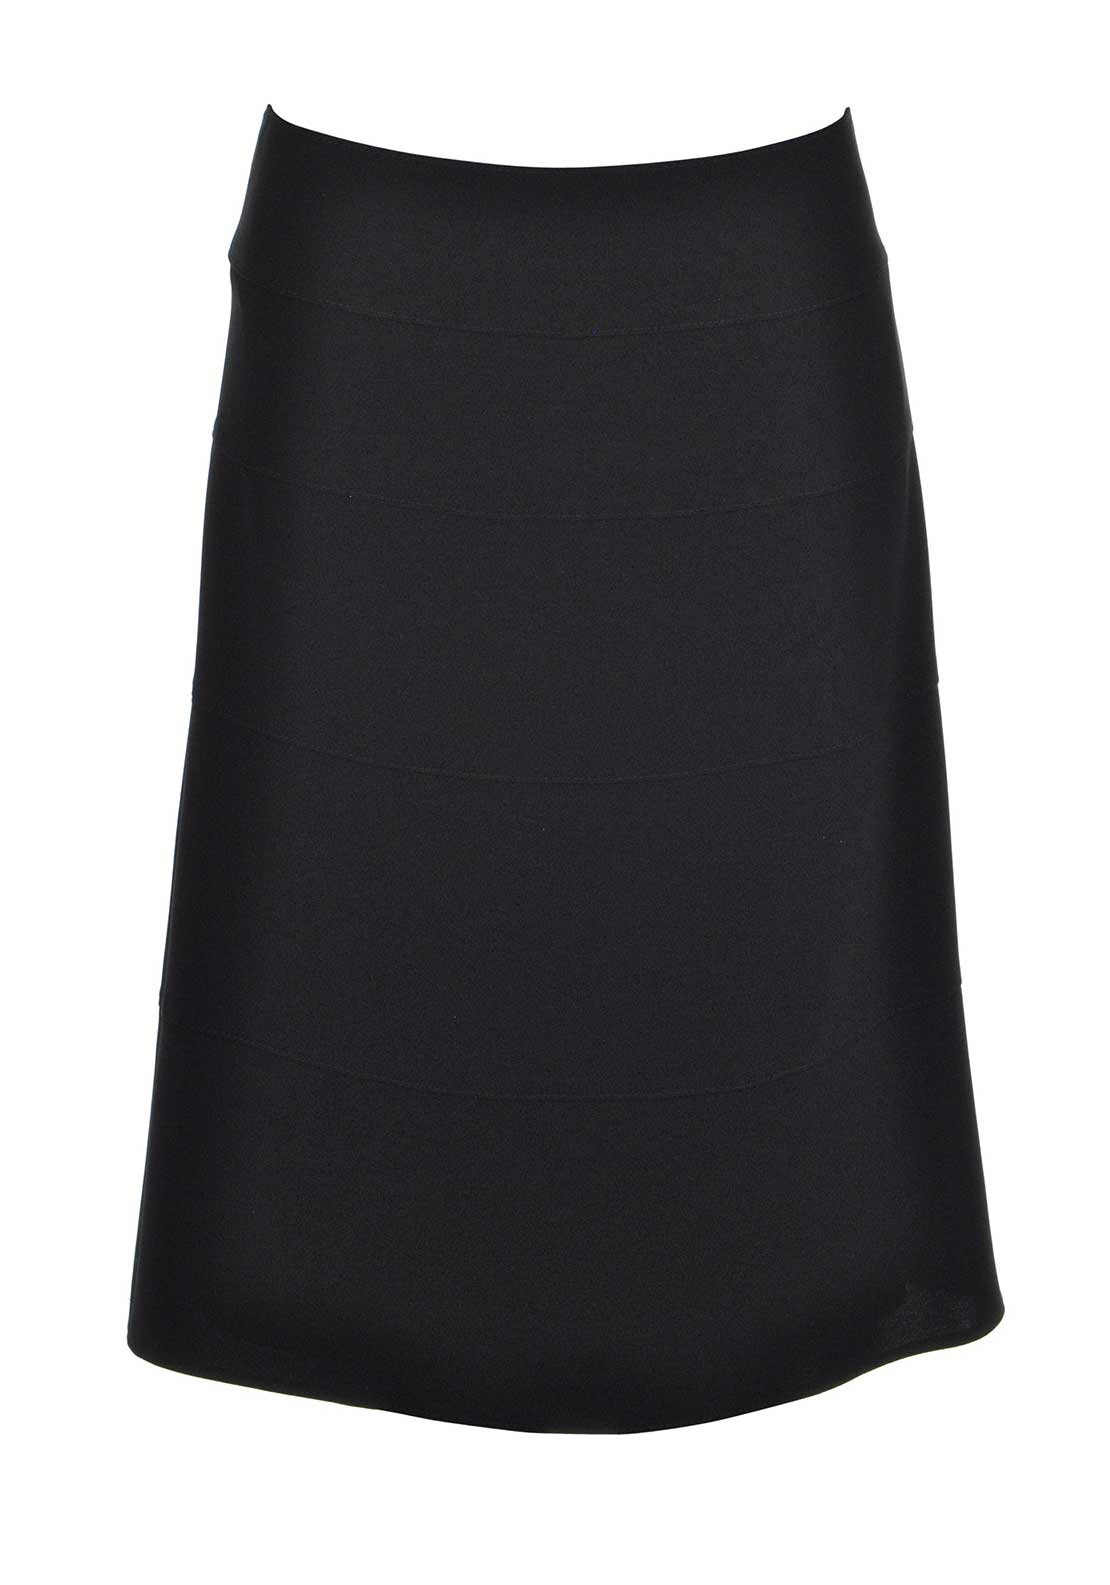 Gerry Weber Panelled A-Line Midi Skirt, Black